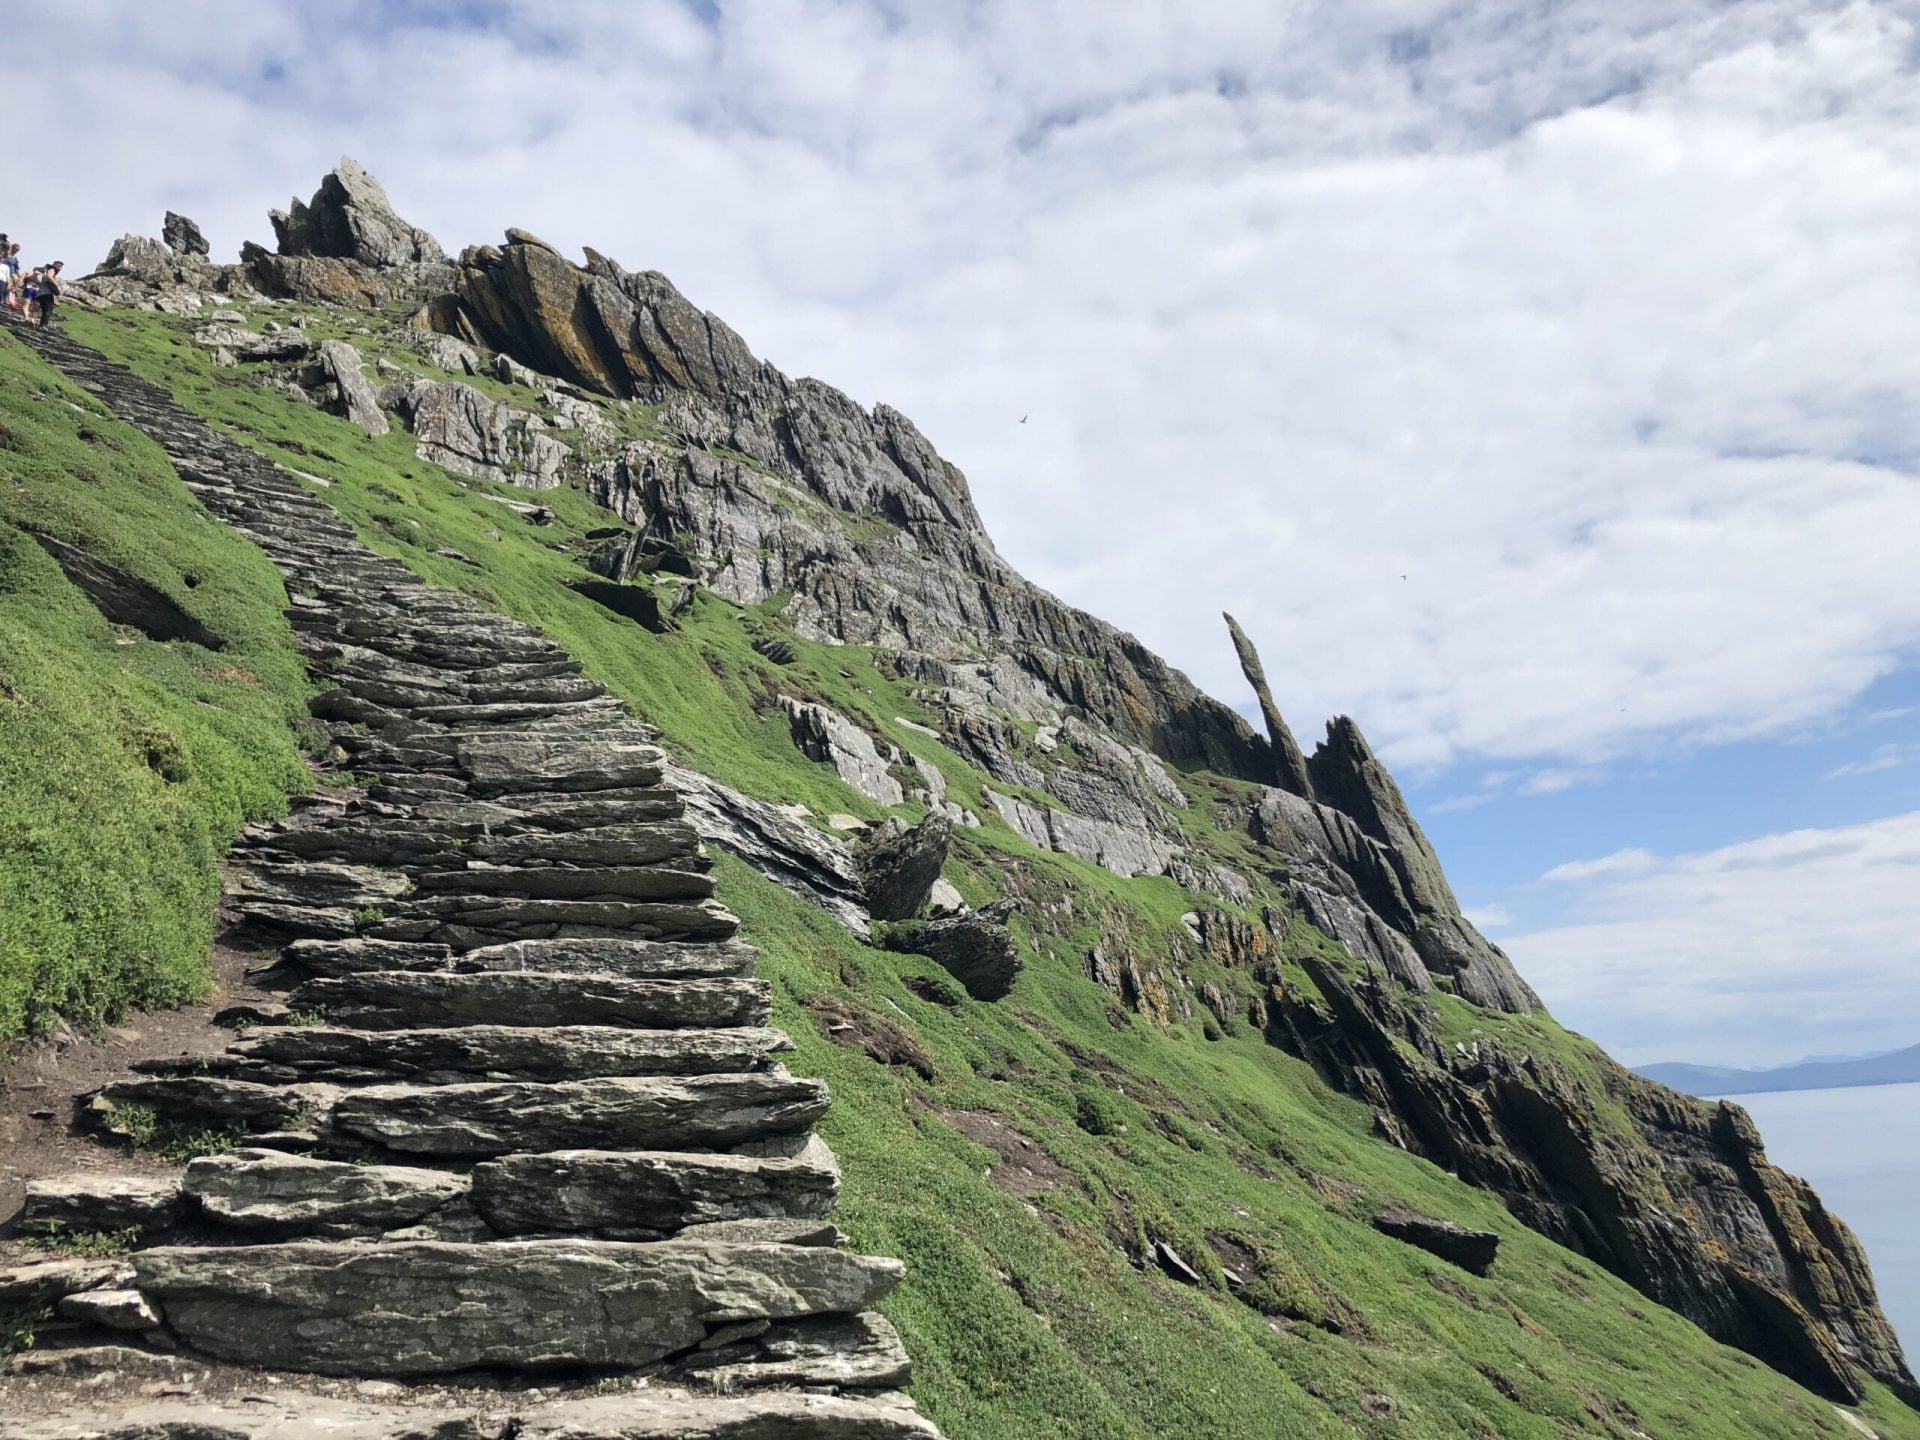 Stairs on Skellig Michael, Ireland